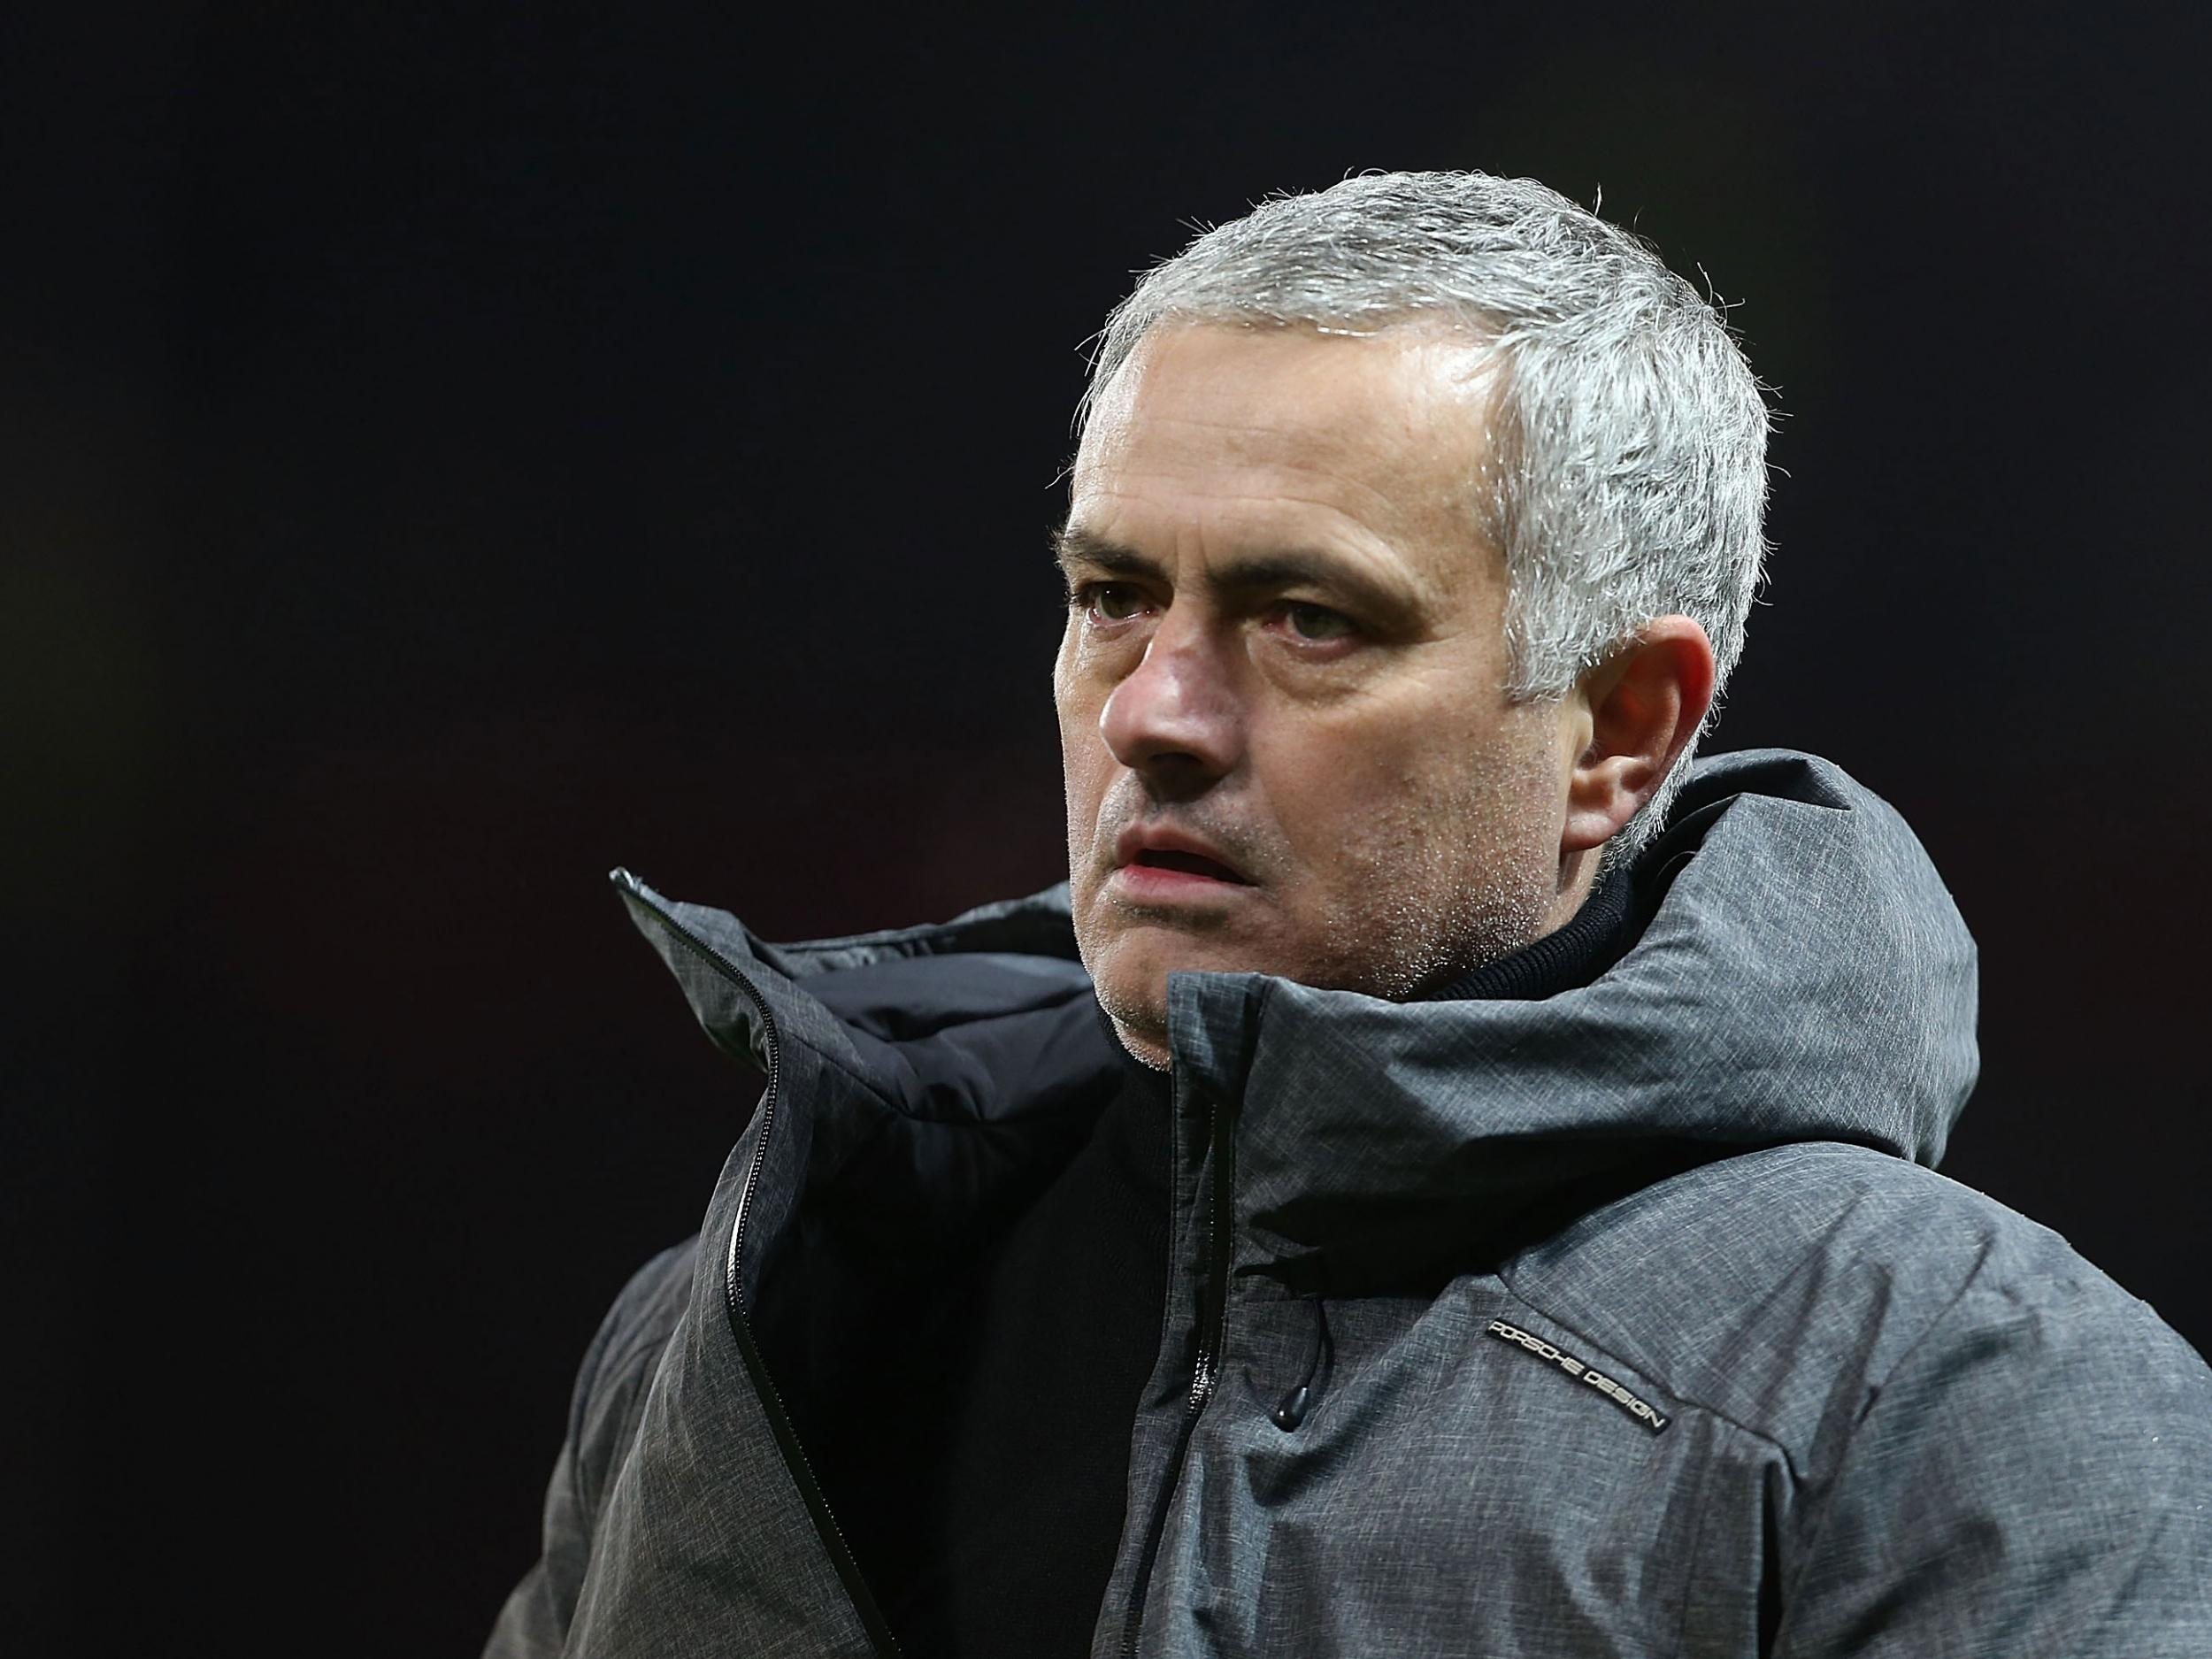 Manchester United manager Jose Mourinho in furious clash with Manchester City players after derby